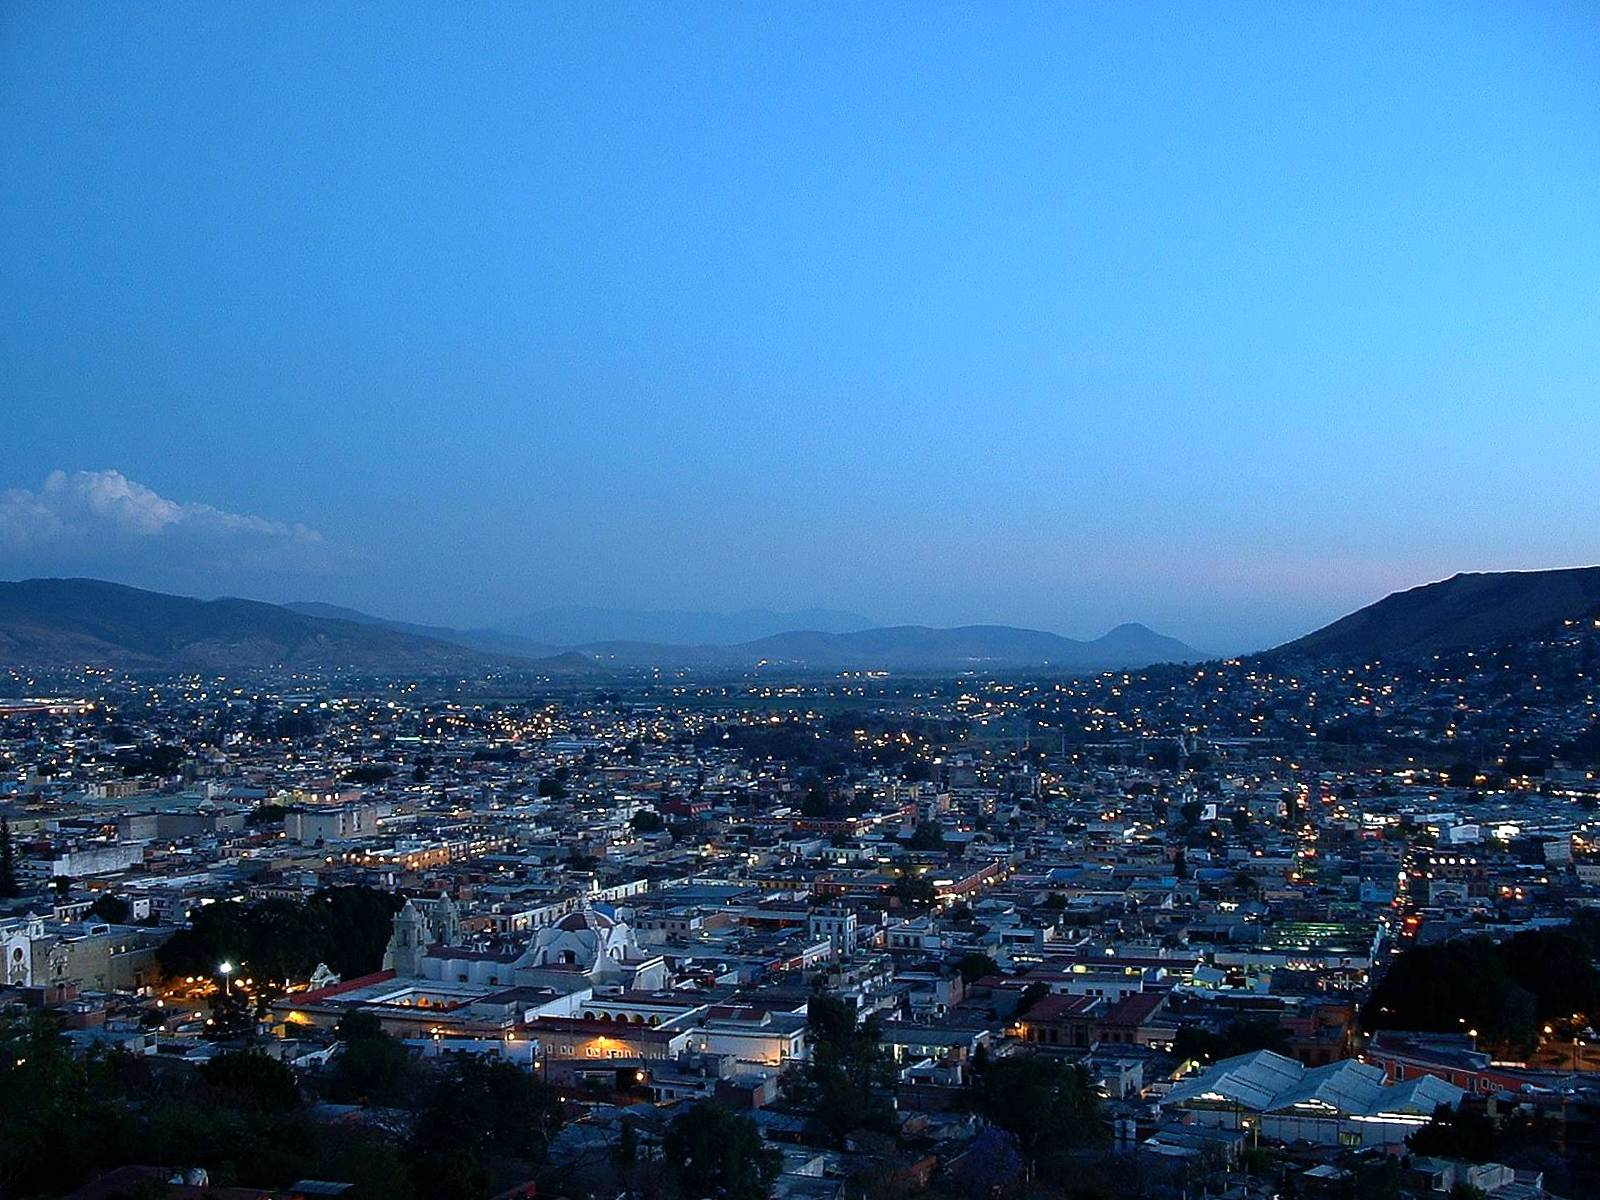 Oaxaca at twilight